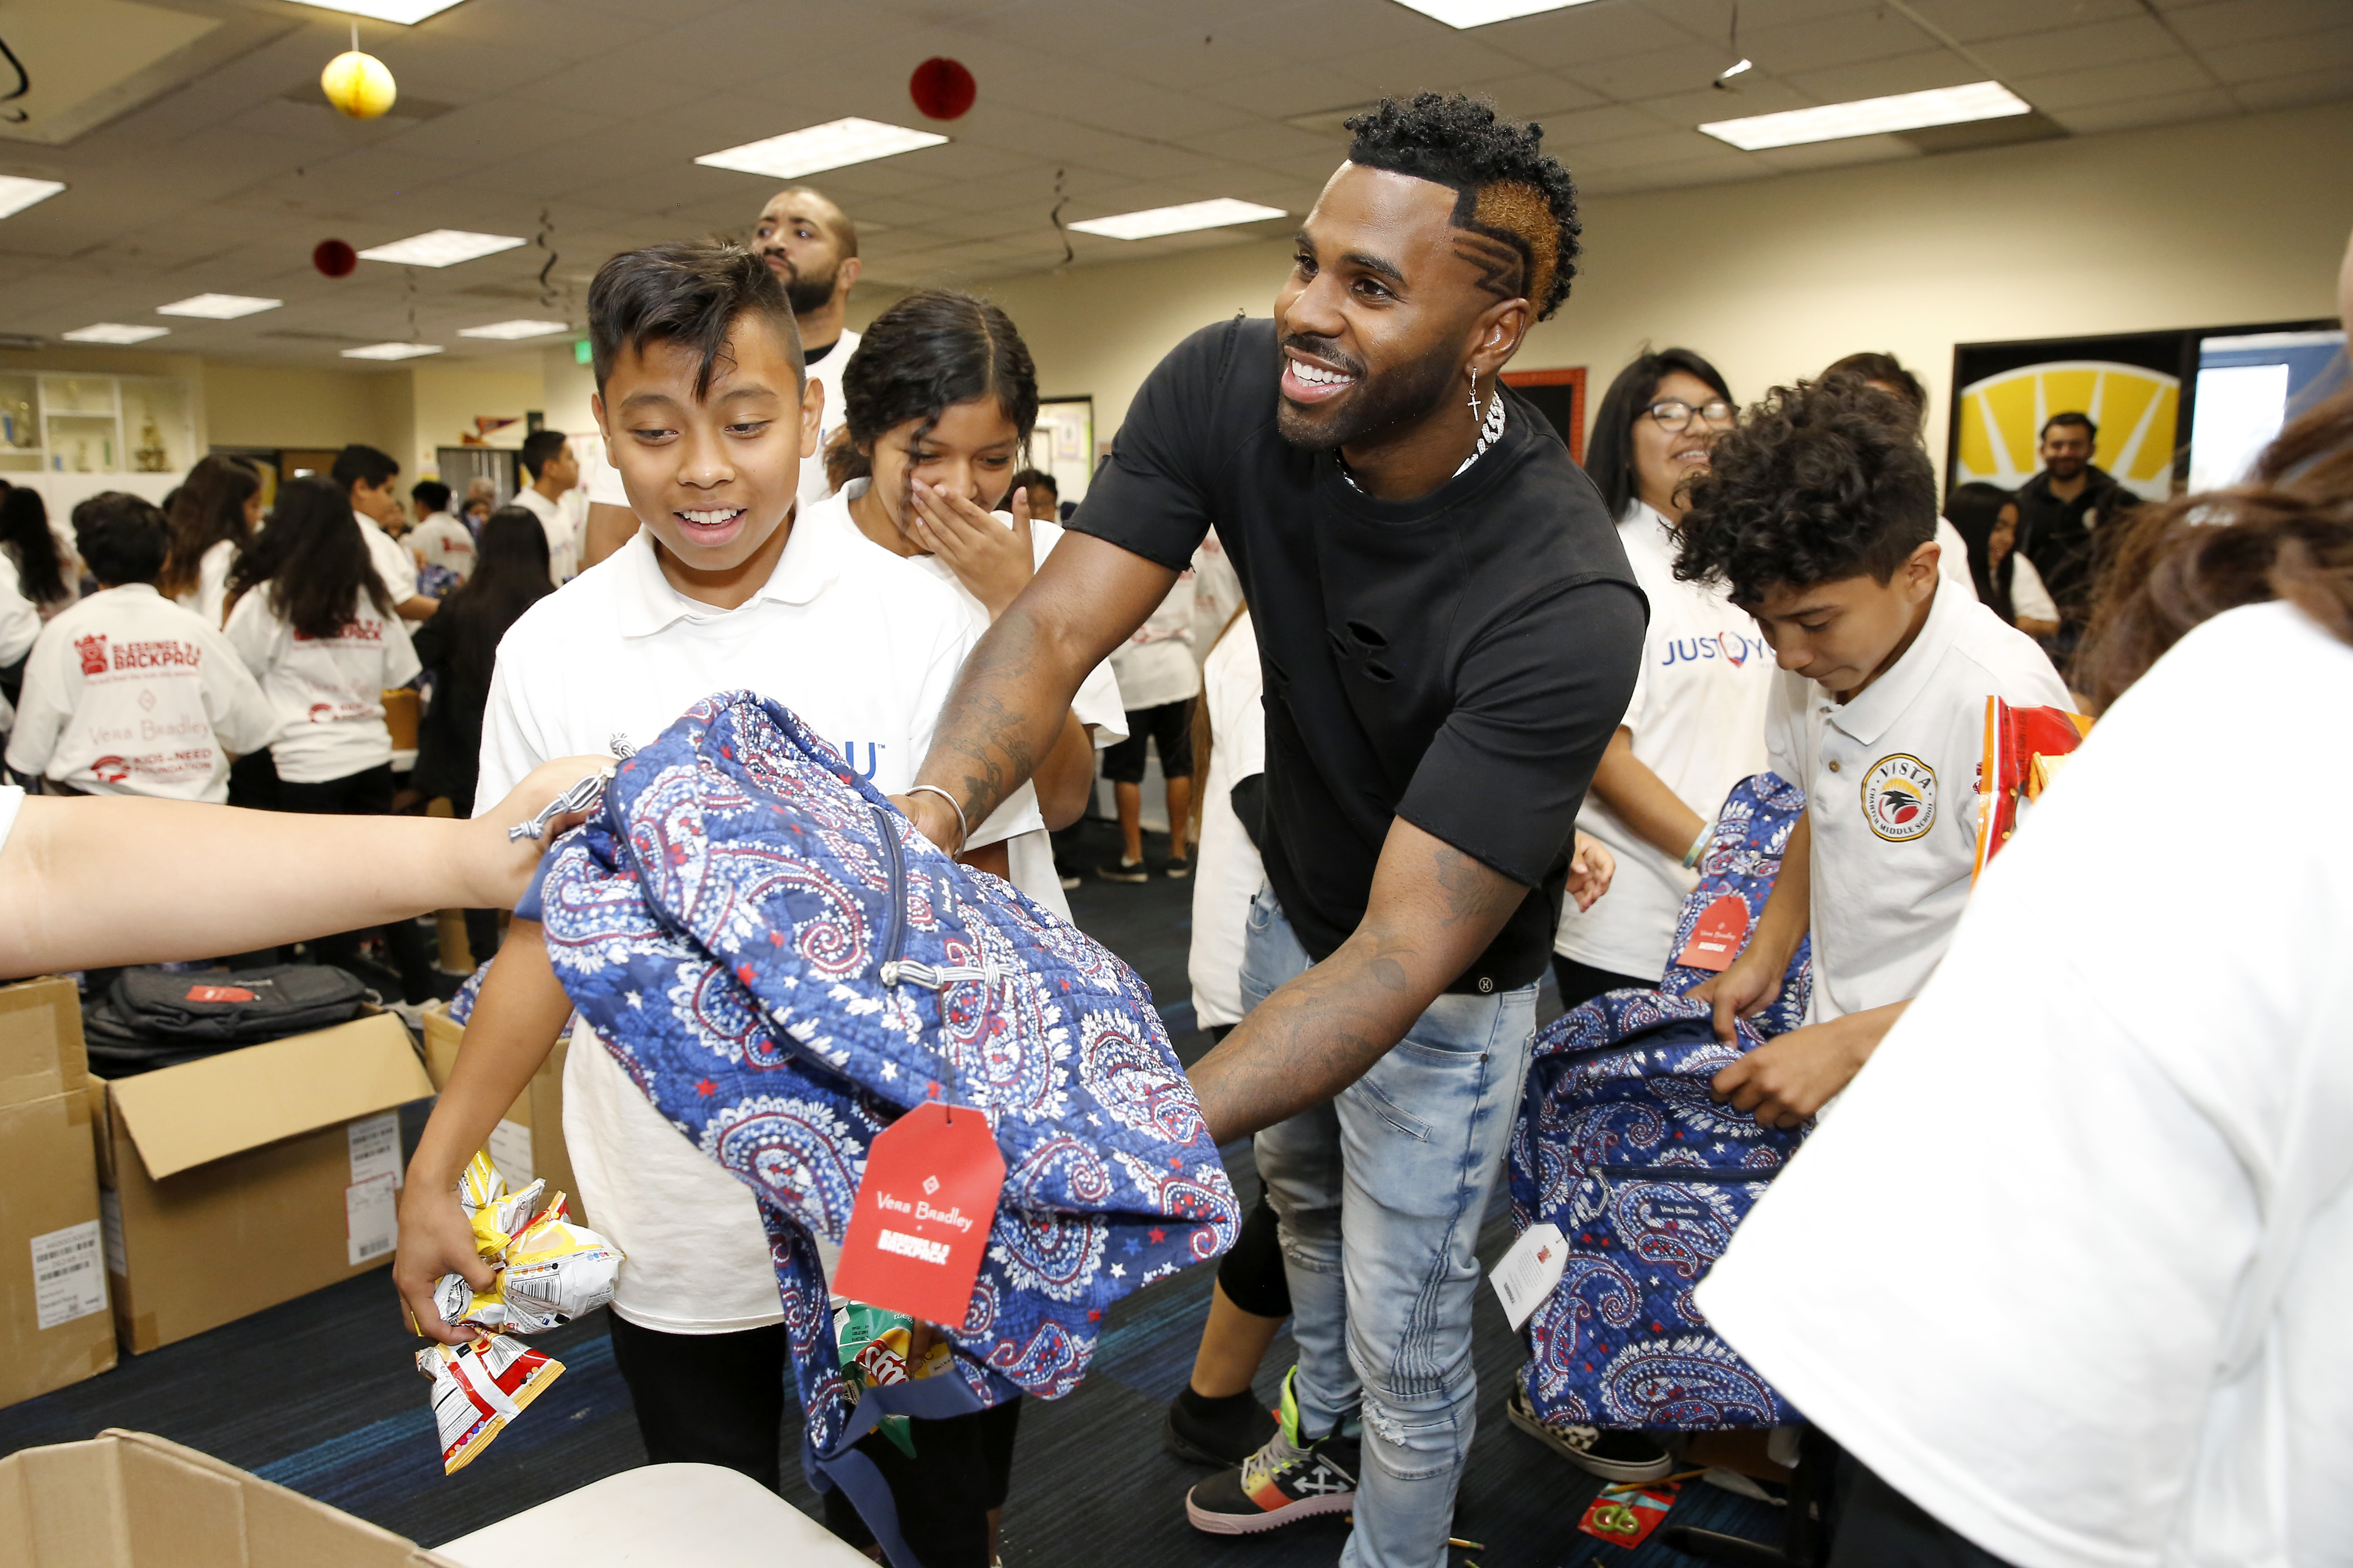 Jason derulo volunteering with Blessings in a Backpack